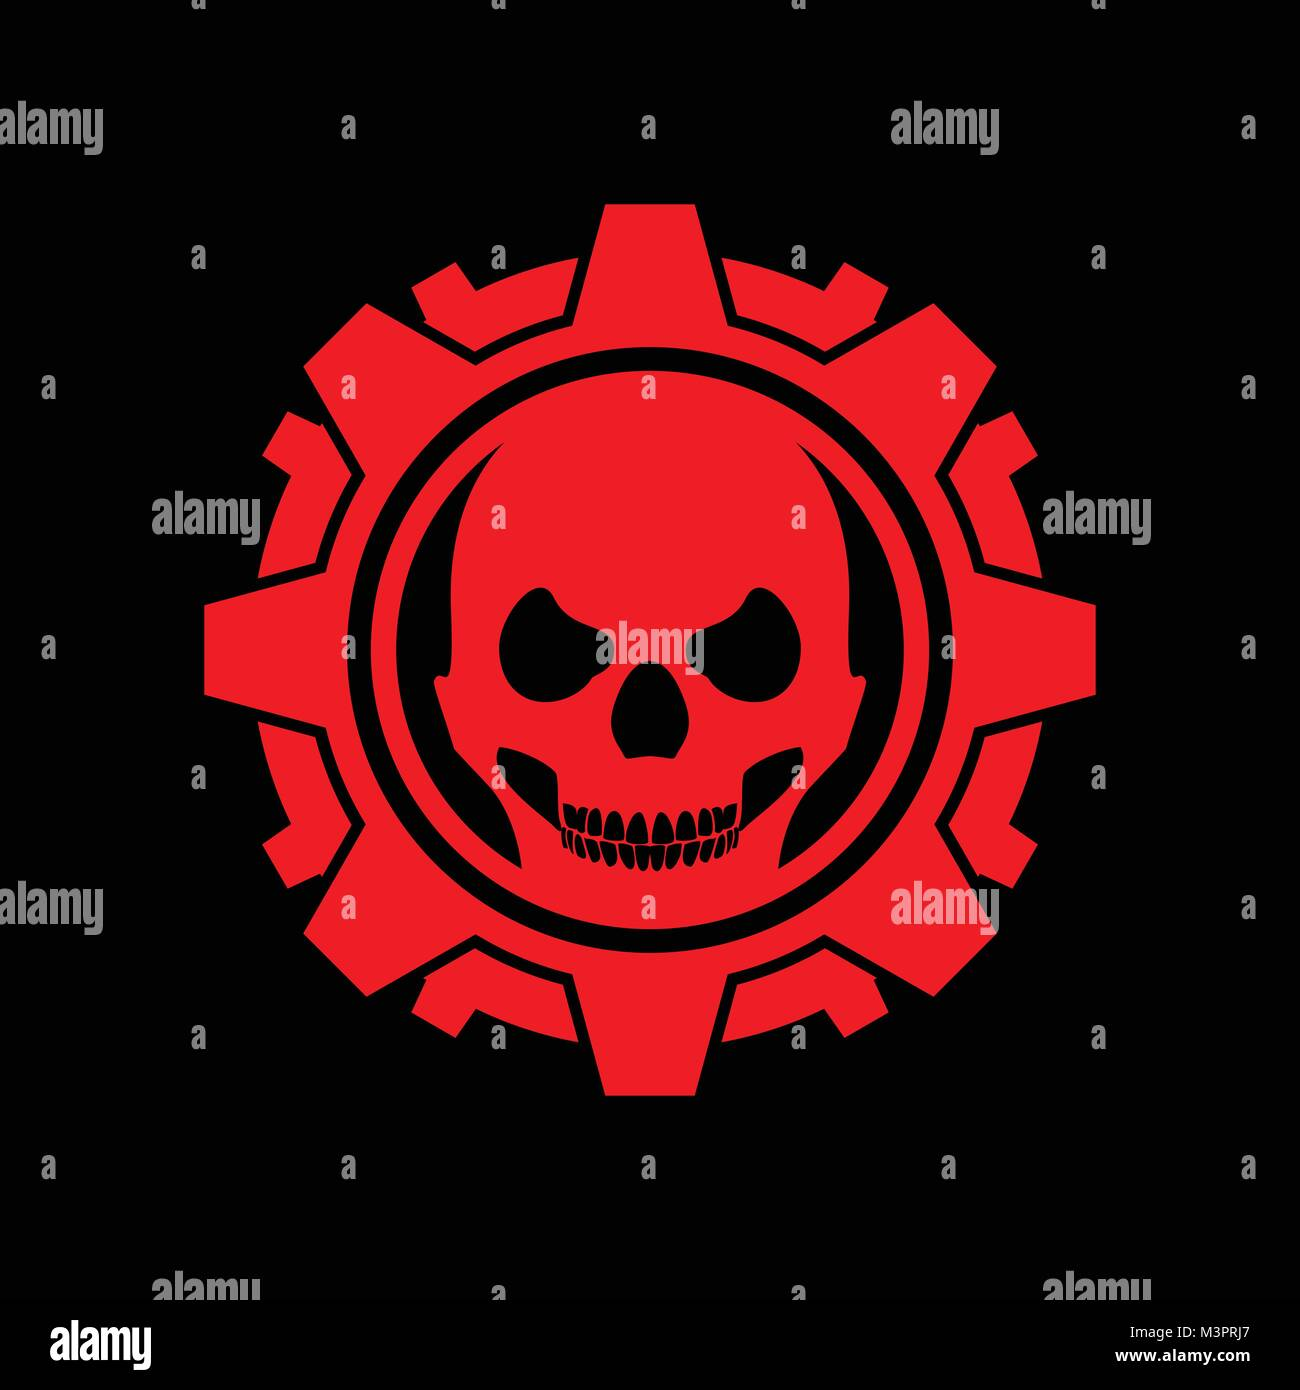 Skull gear machine black background vector symbol graphic design skull gear machine black background vector symbol graphic design buycottarizona Images